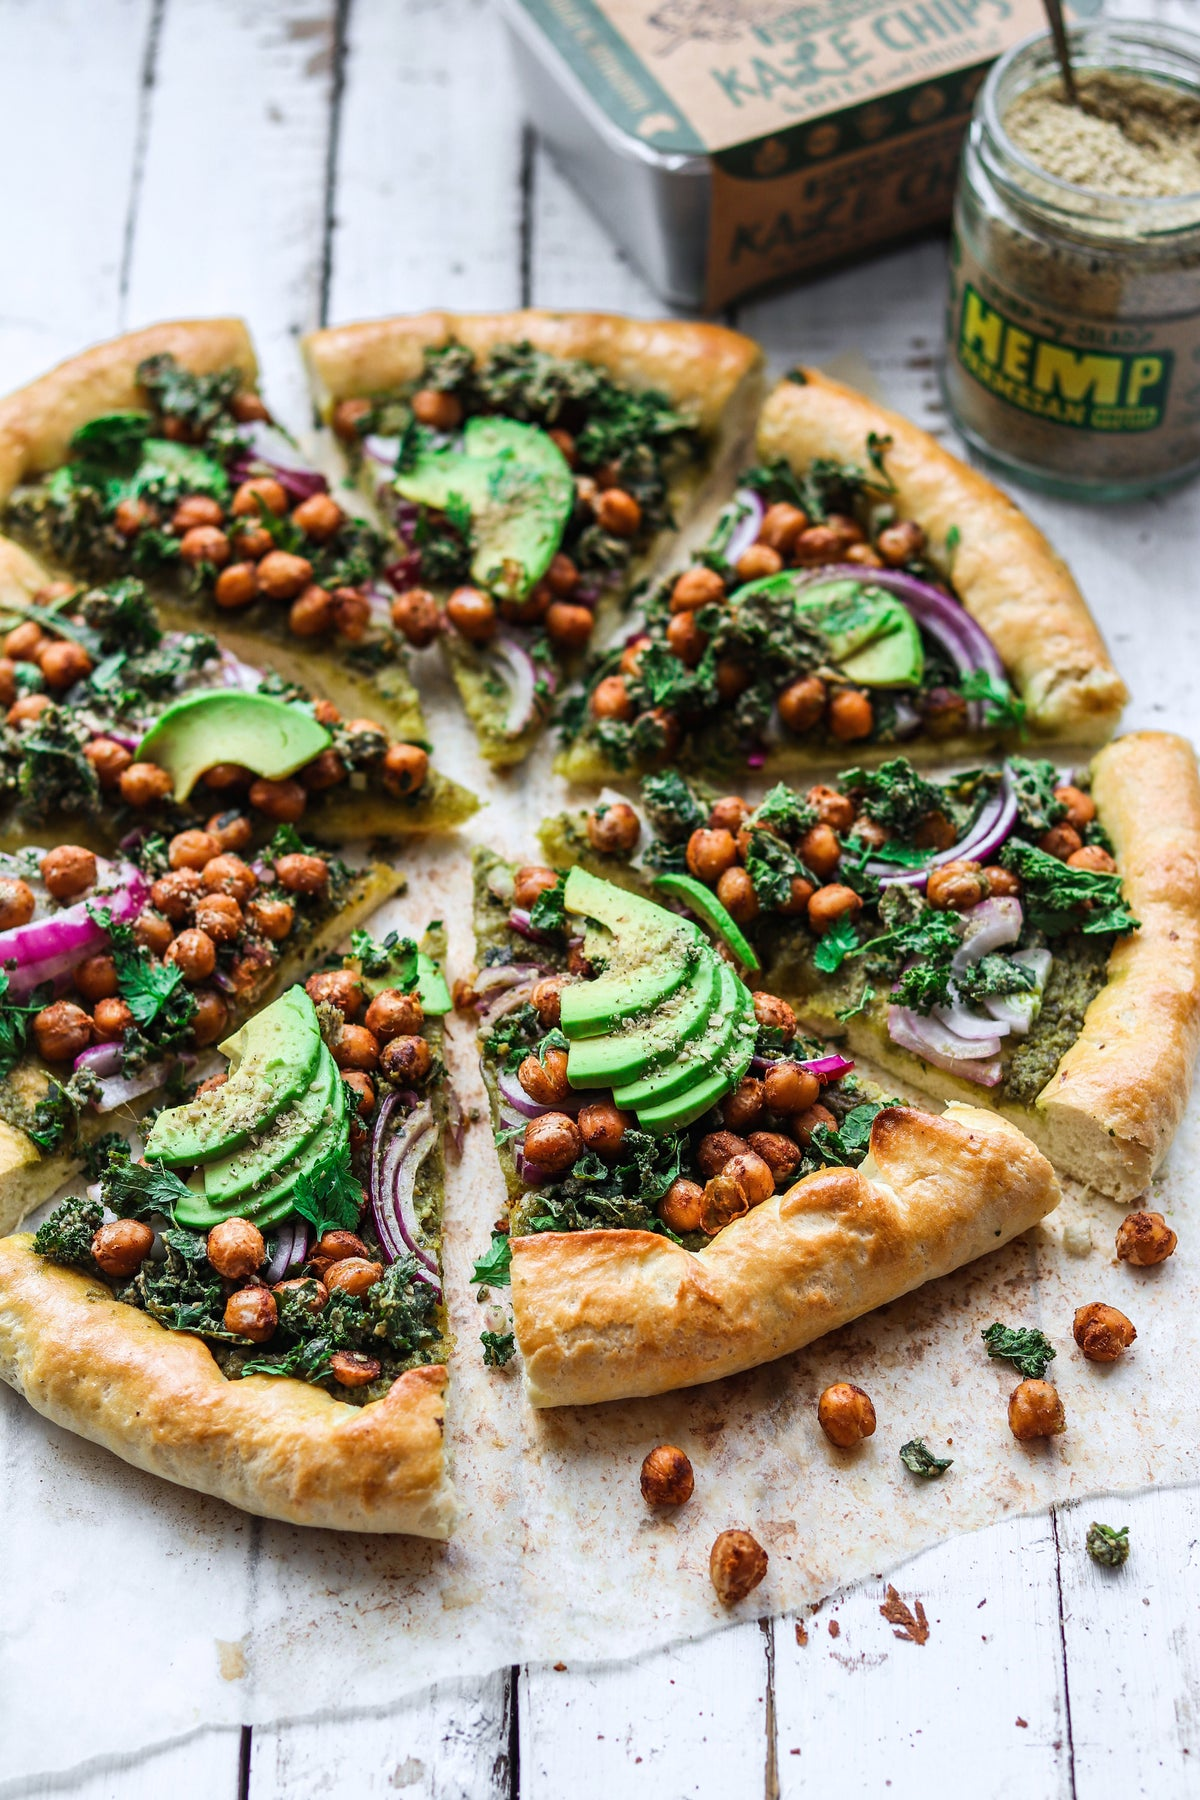 Homemade Vegan Pizza Topped with Hemp Parmesan and Kale Chips | Vegan Diet